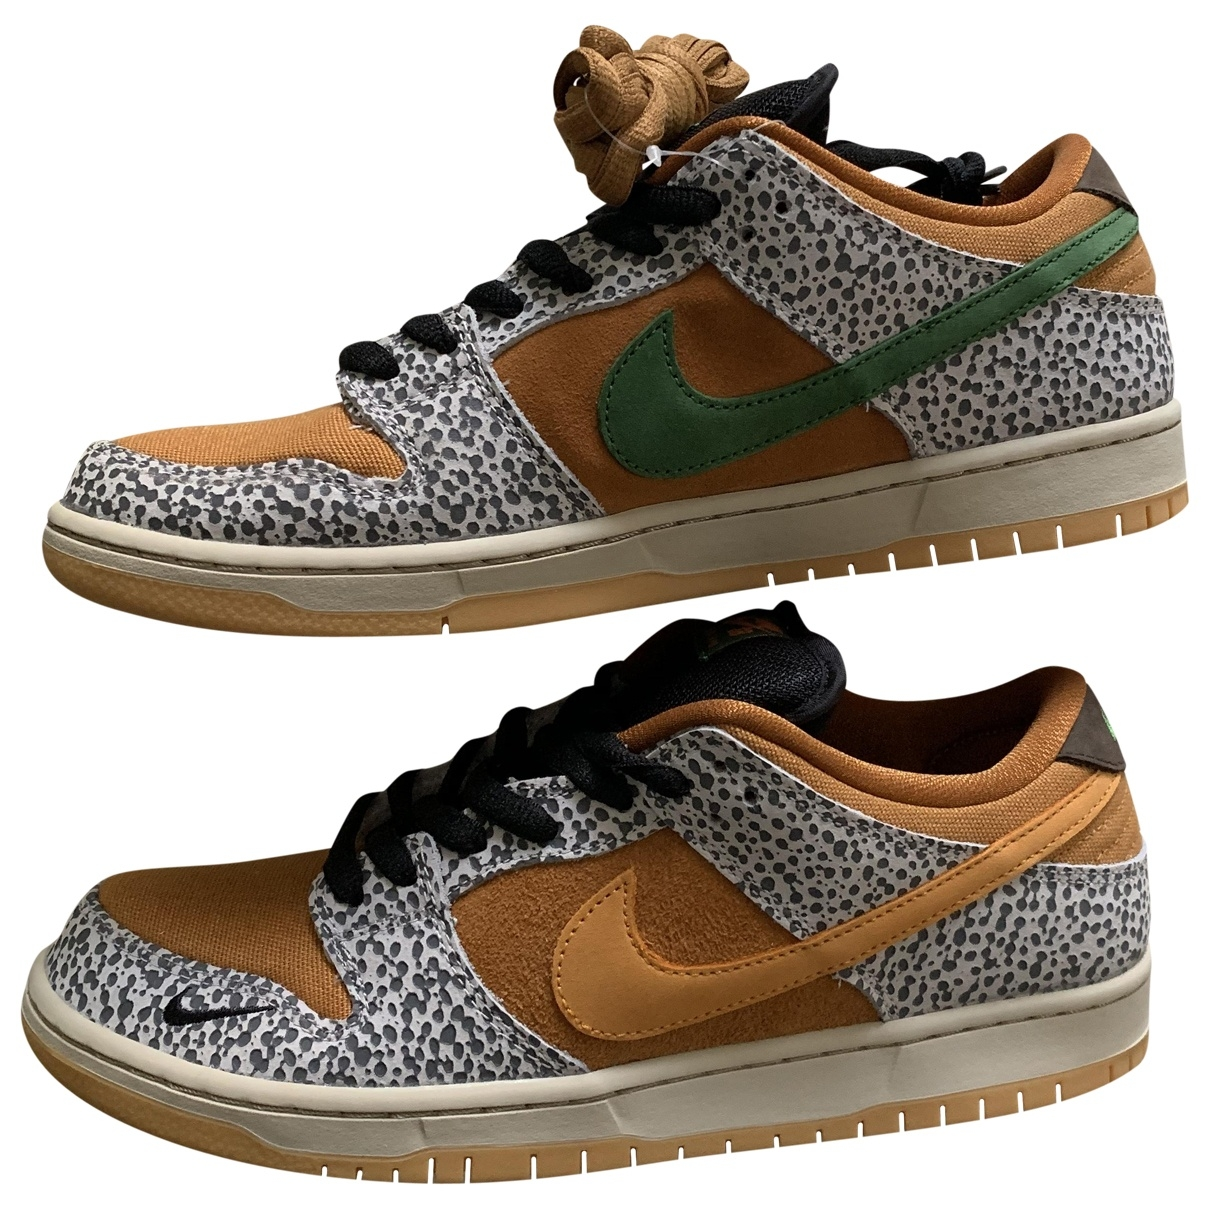 Nike SB Dunk  Leather Trainers for Men 44.5 EU